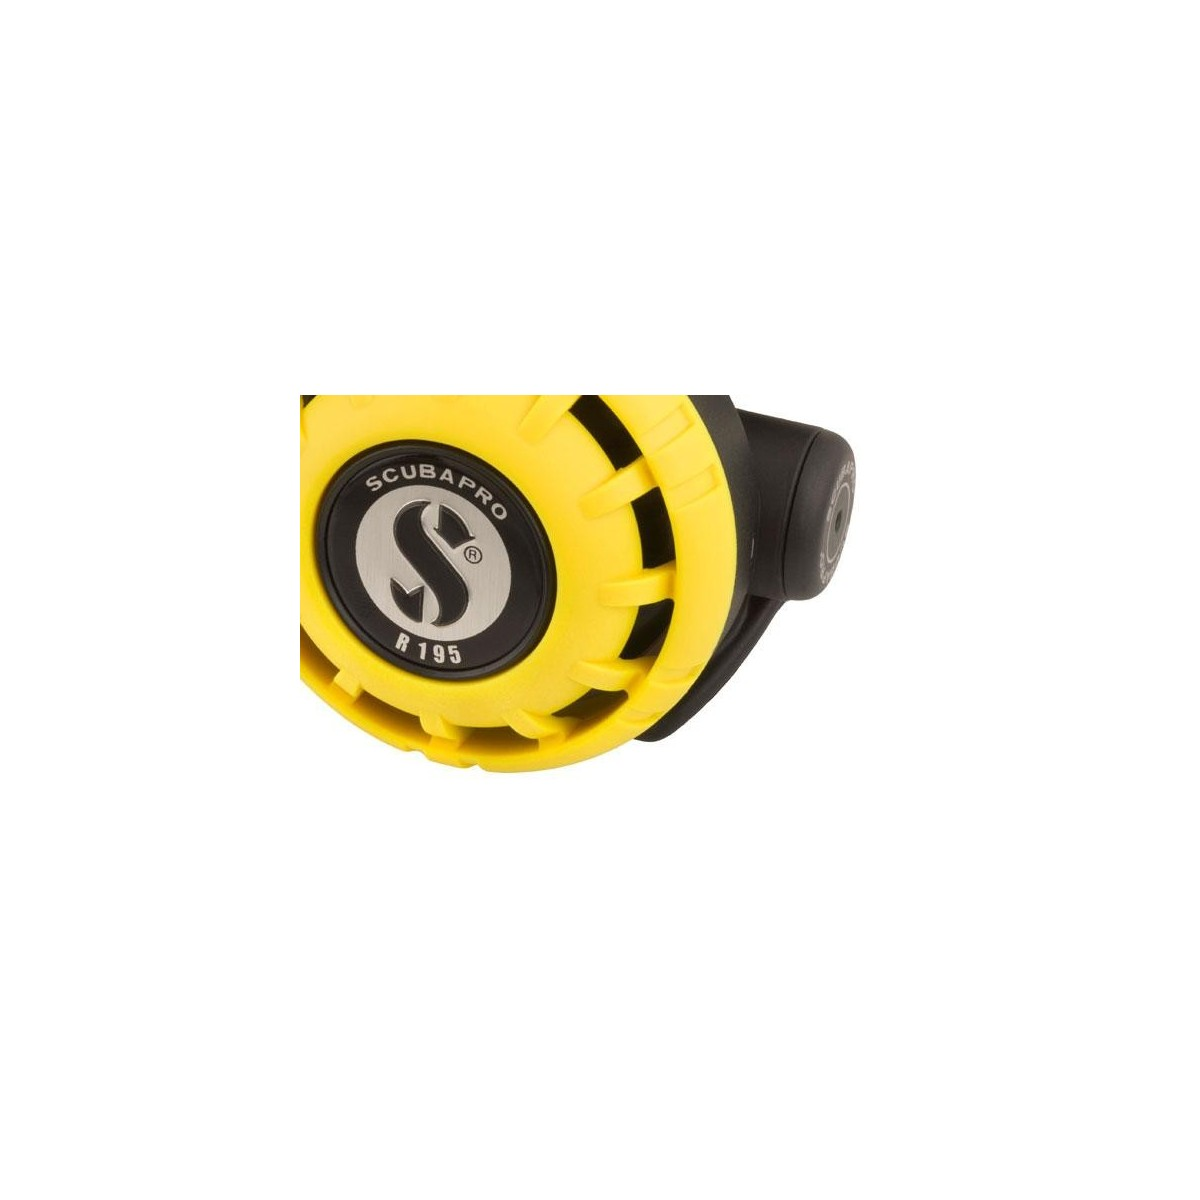 Scubapro R195 Octopus For Scuba Diving Regulator